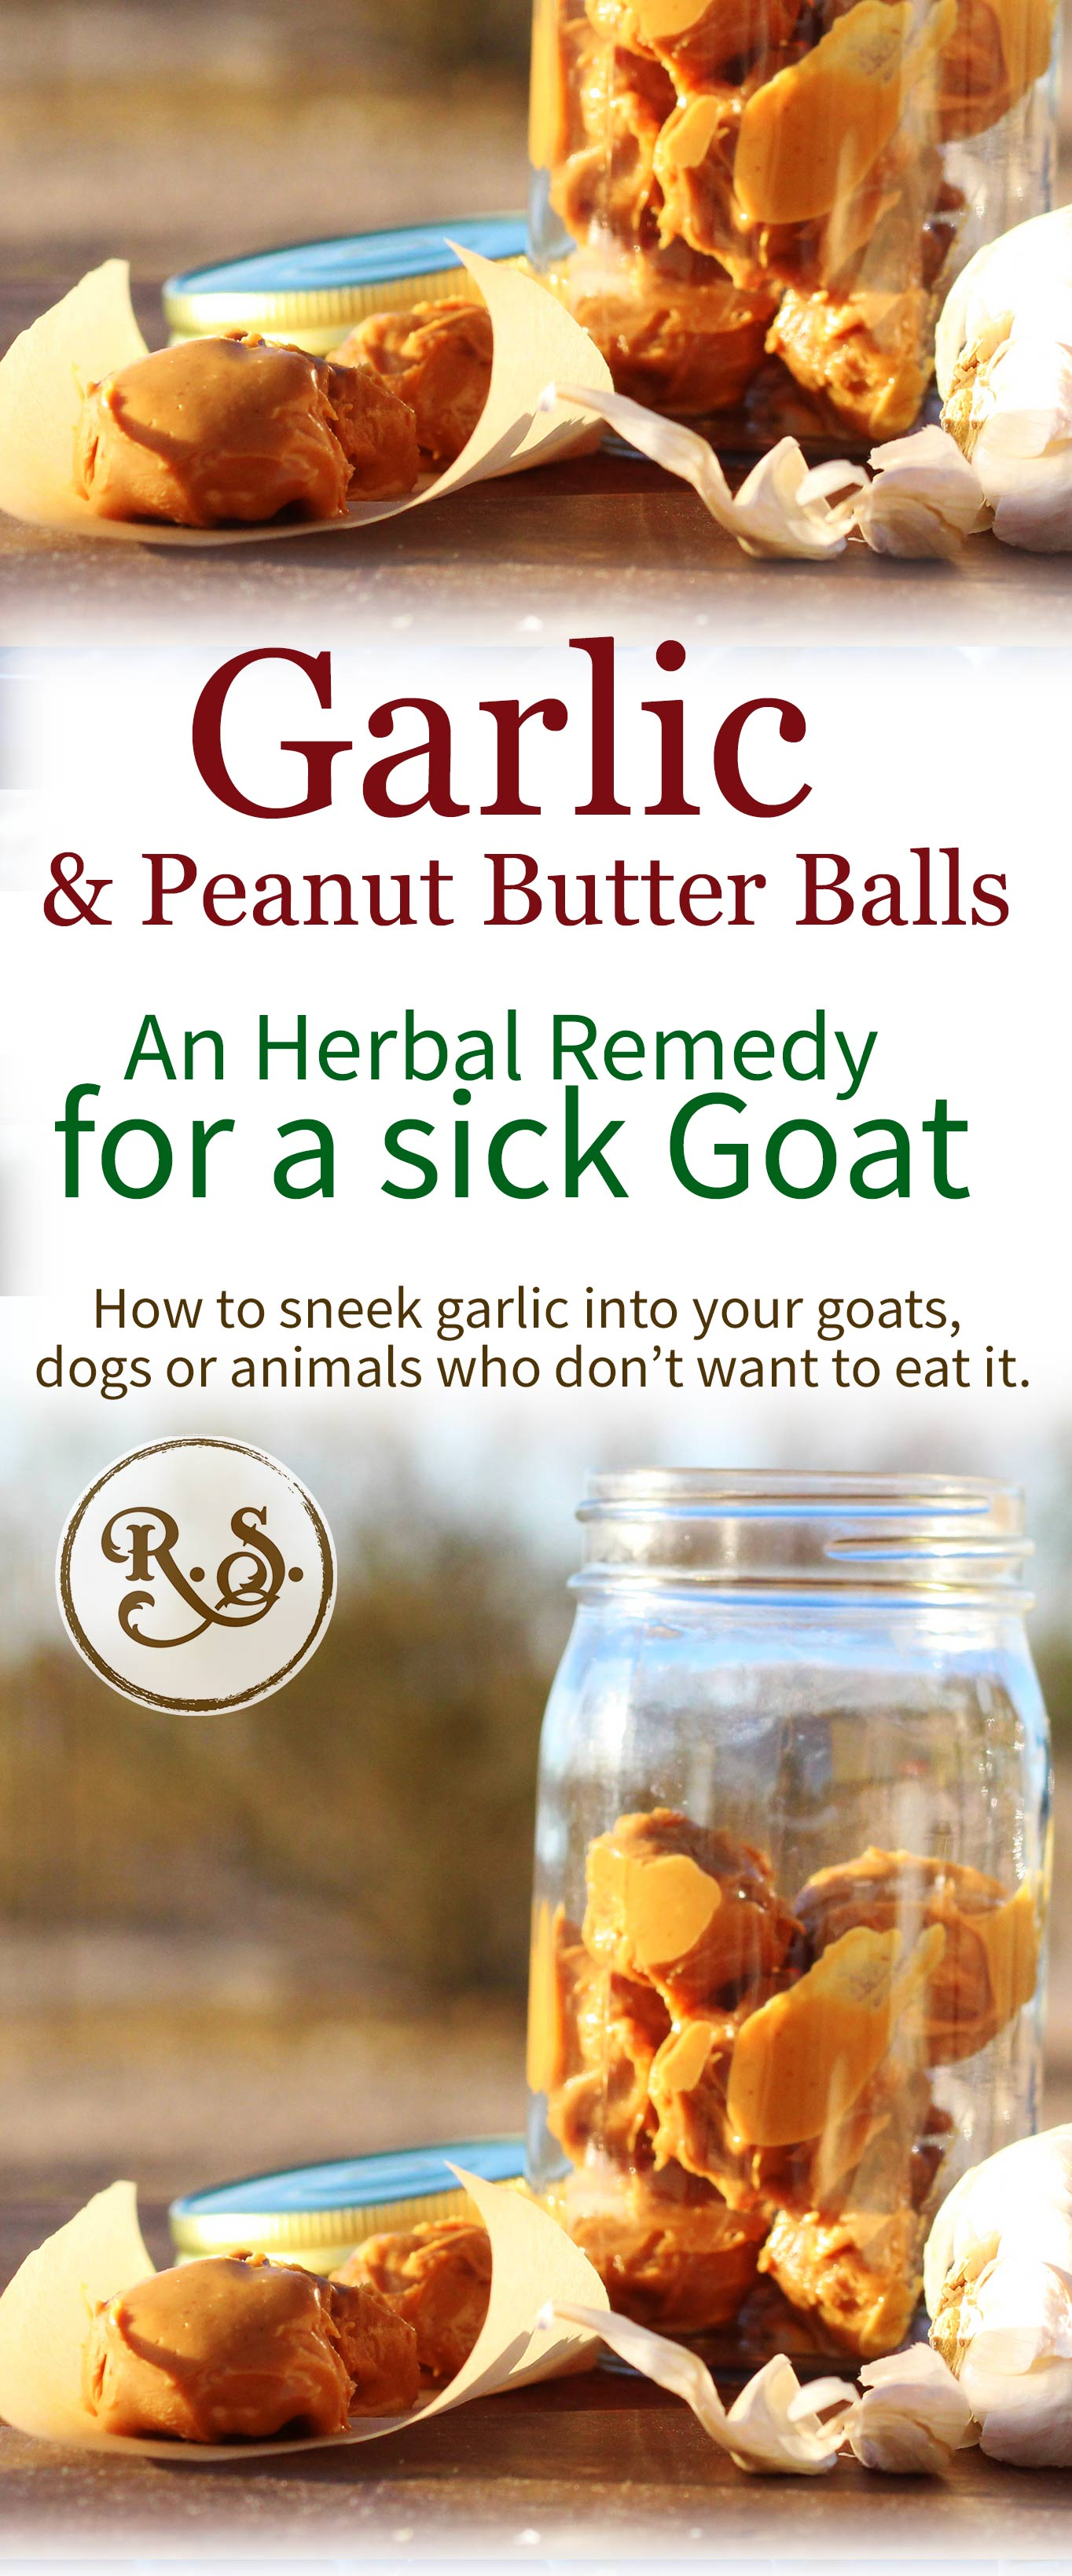 Garlic remedies are the best for a sick goat, dog, chicken, or yourself. Here's a recipe for garlic peanut butter balls for animals who don't like garlic.